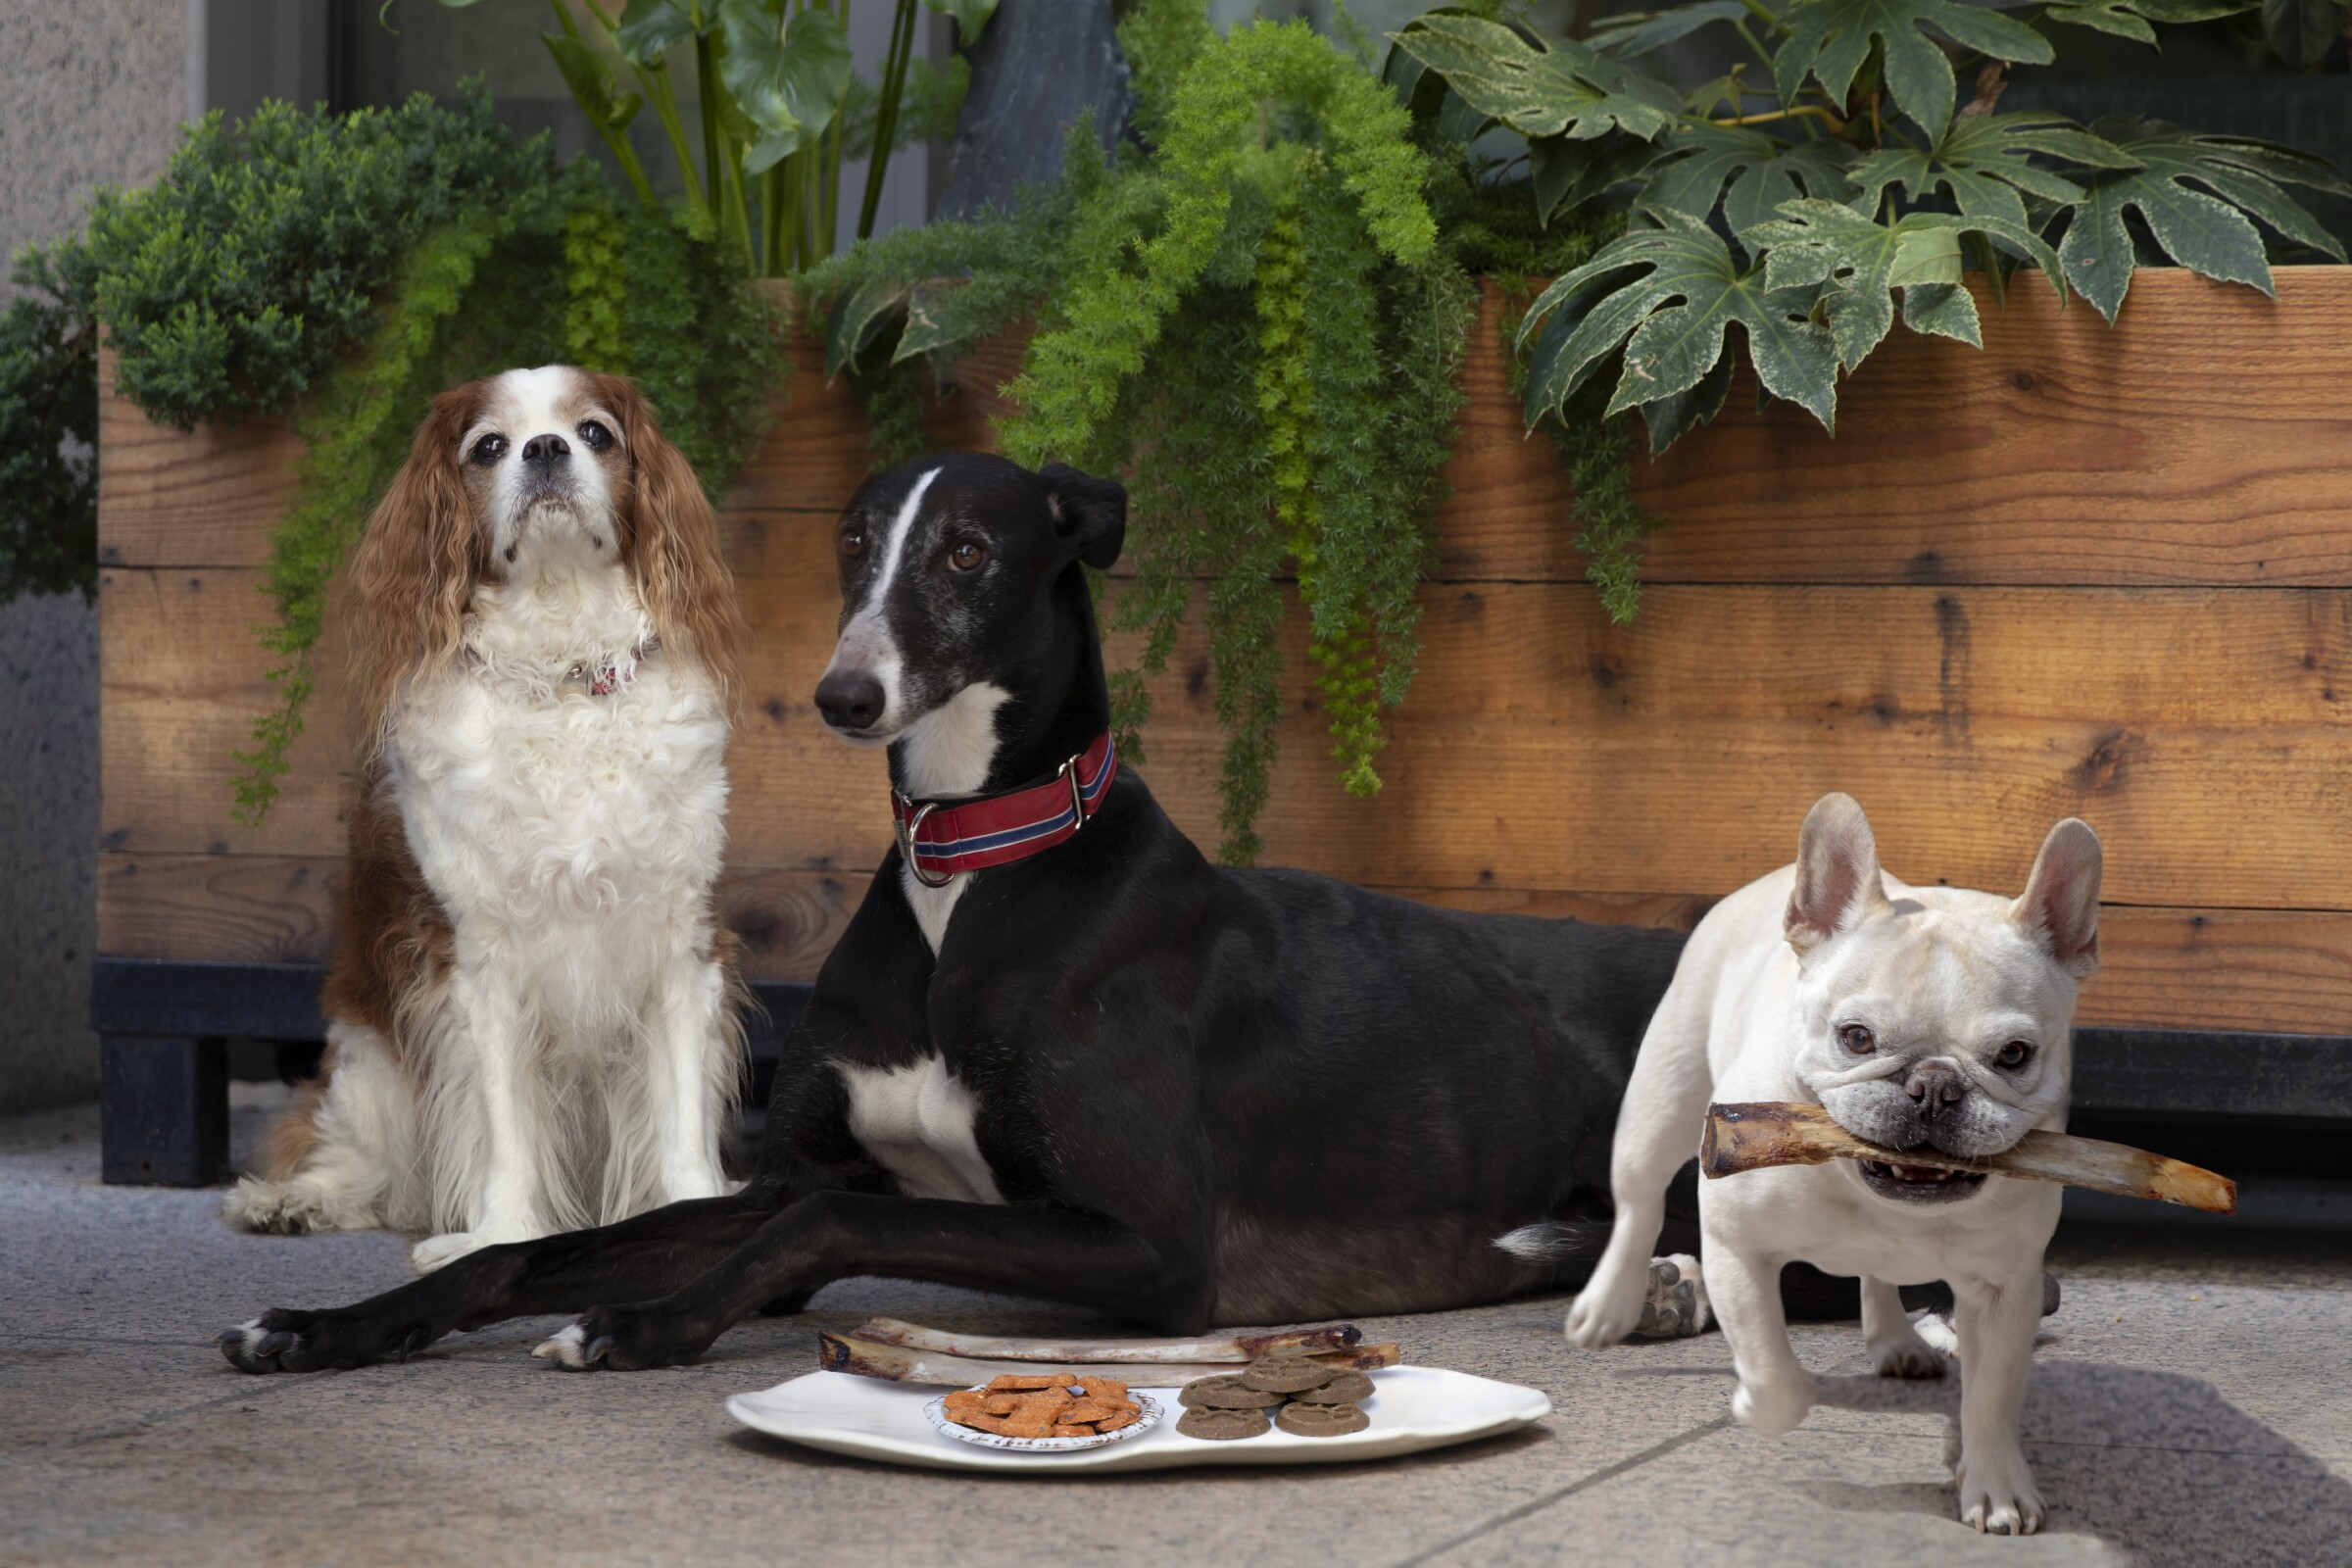 A variety of breeds enjoy food offerings on the dog menu at International Smoke, one of the eight spots to take your pup to on our pet dining list.